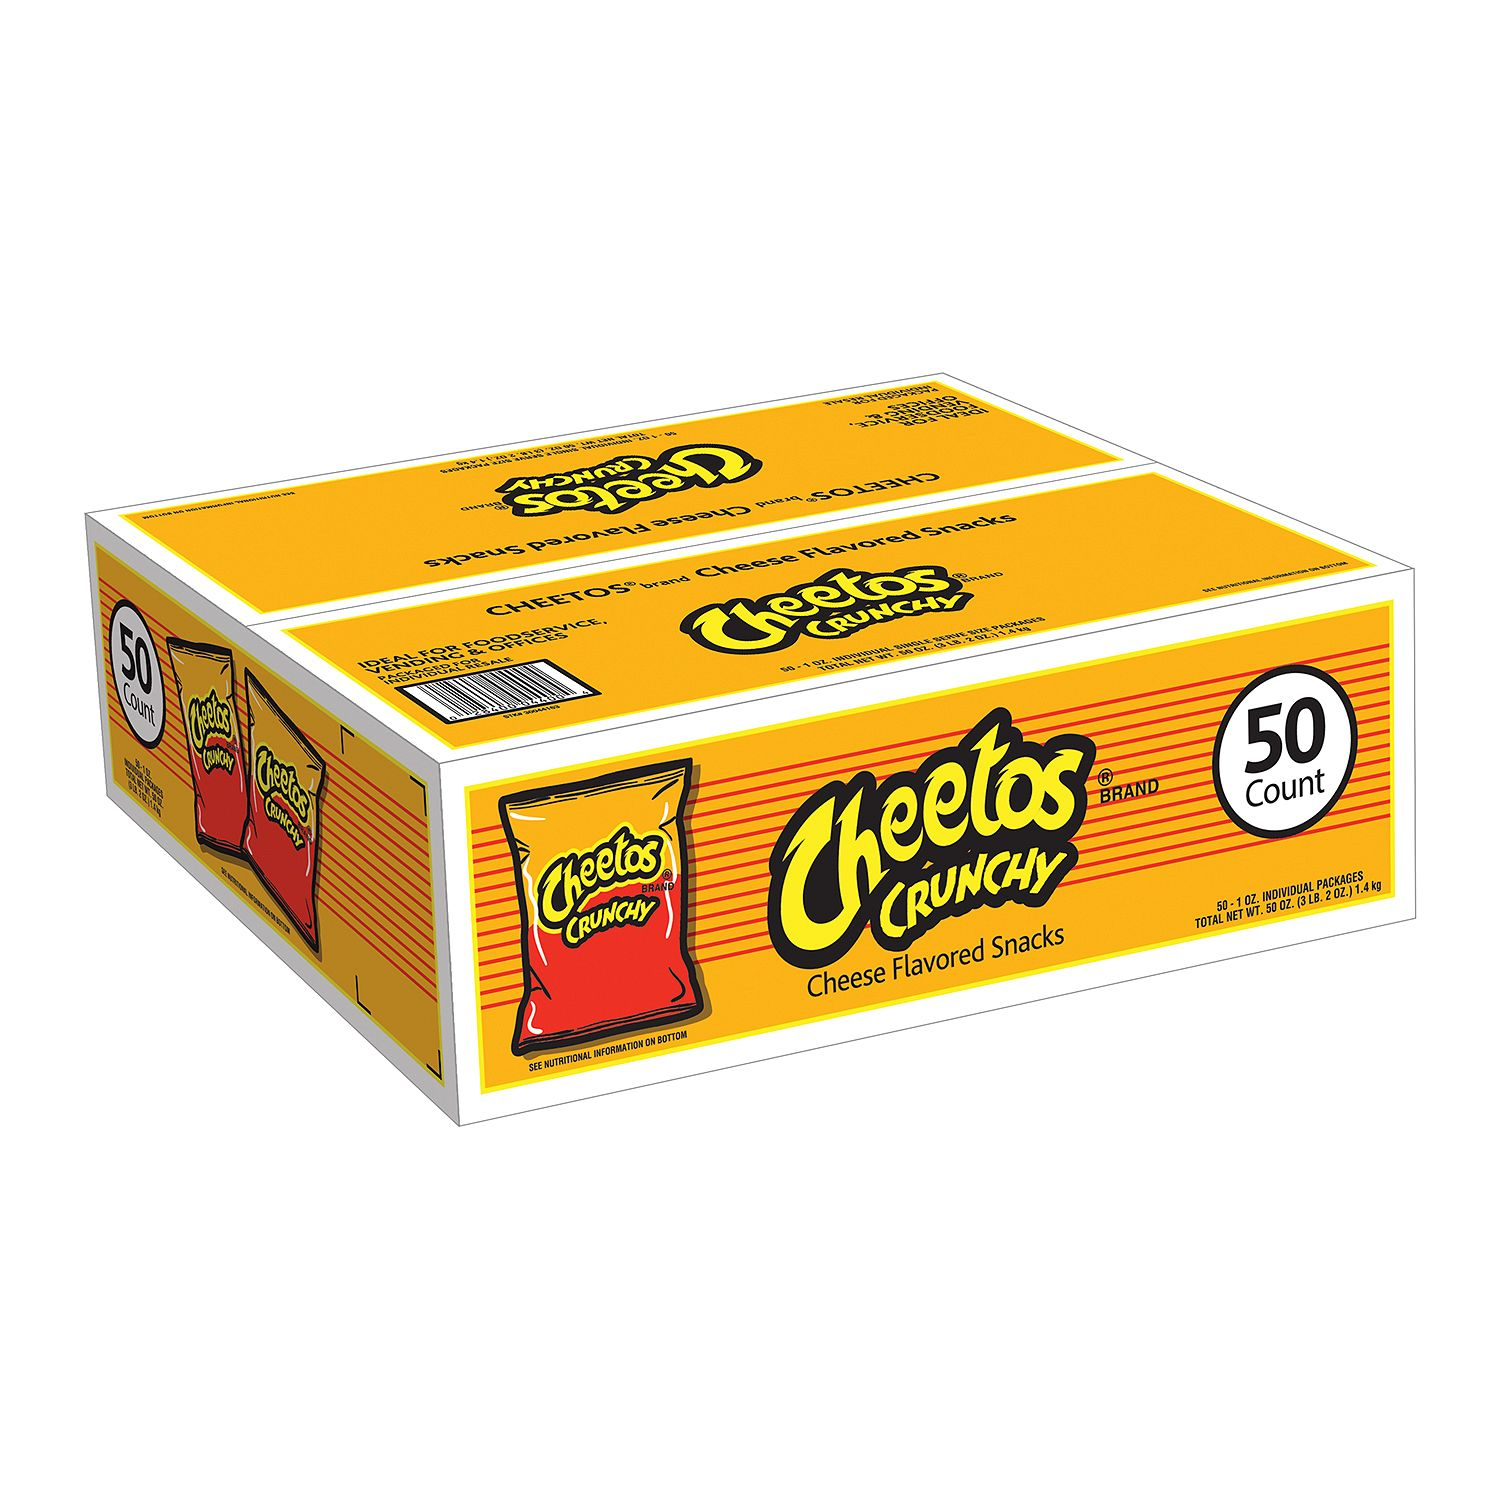 Cheetos Crunchy 1 oz. (50 ct.)